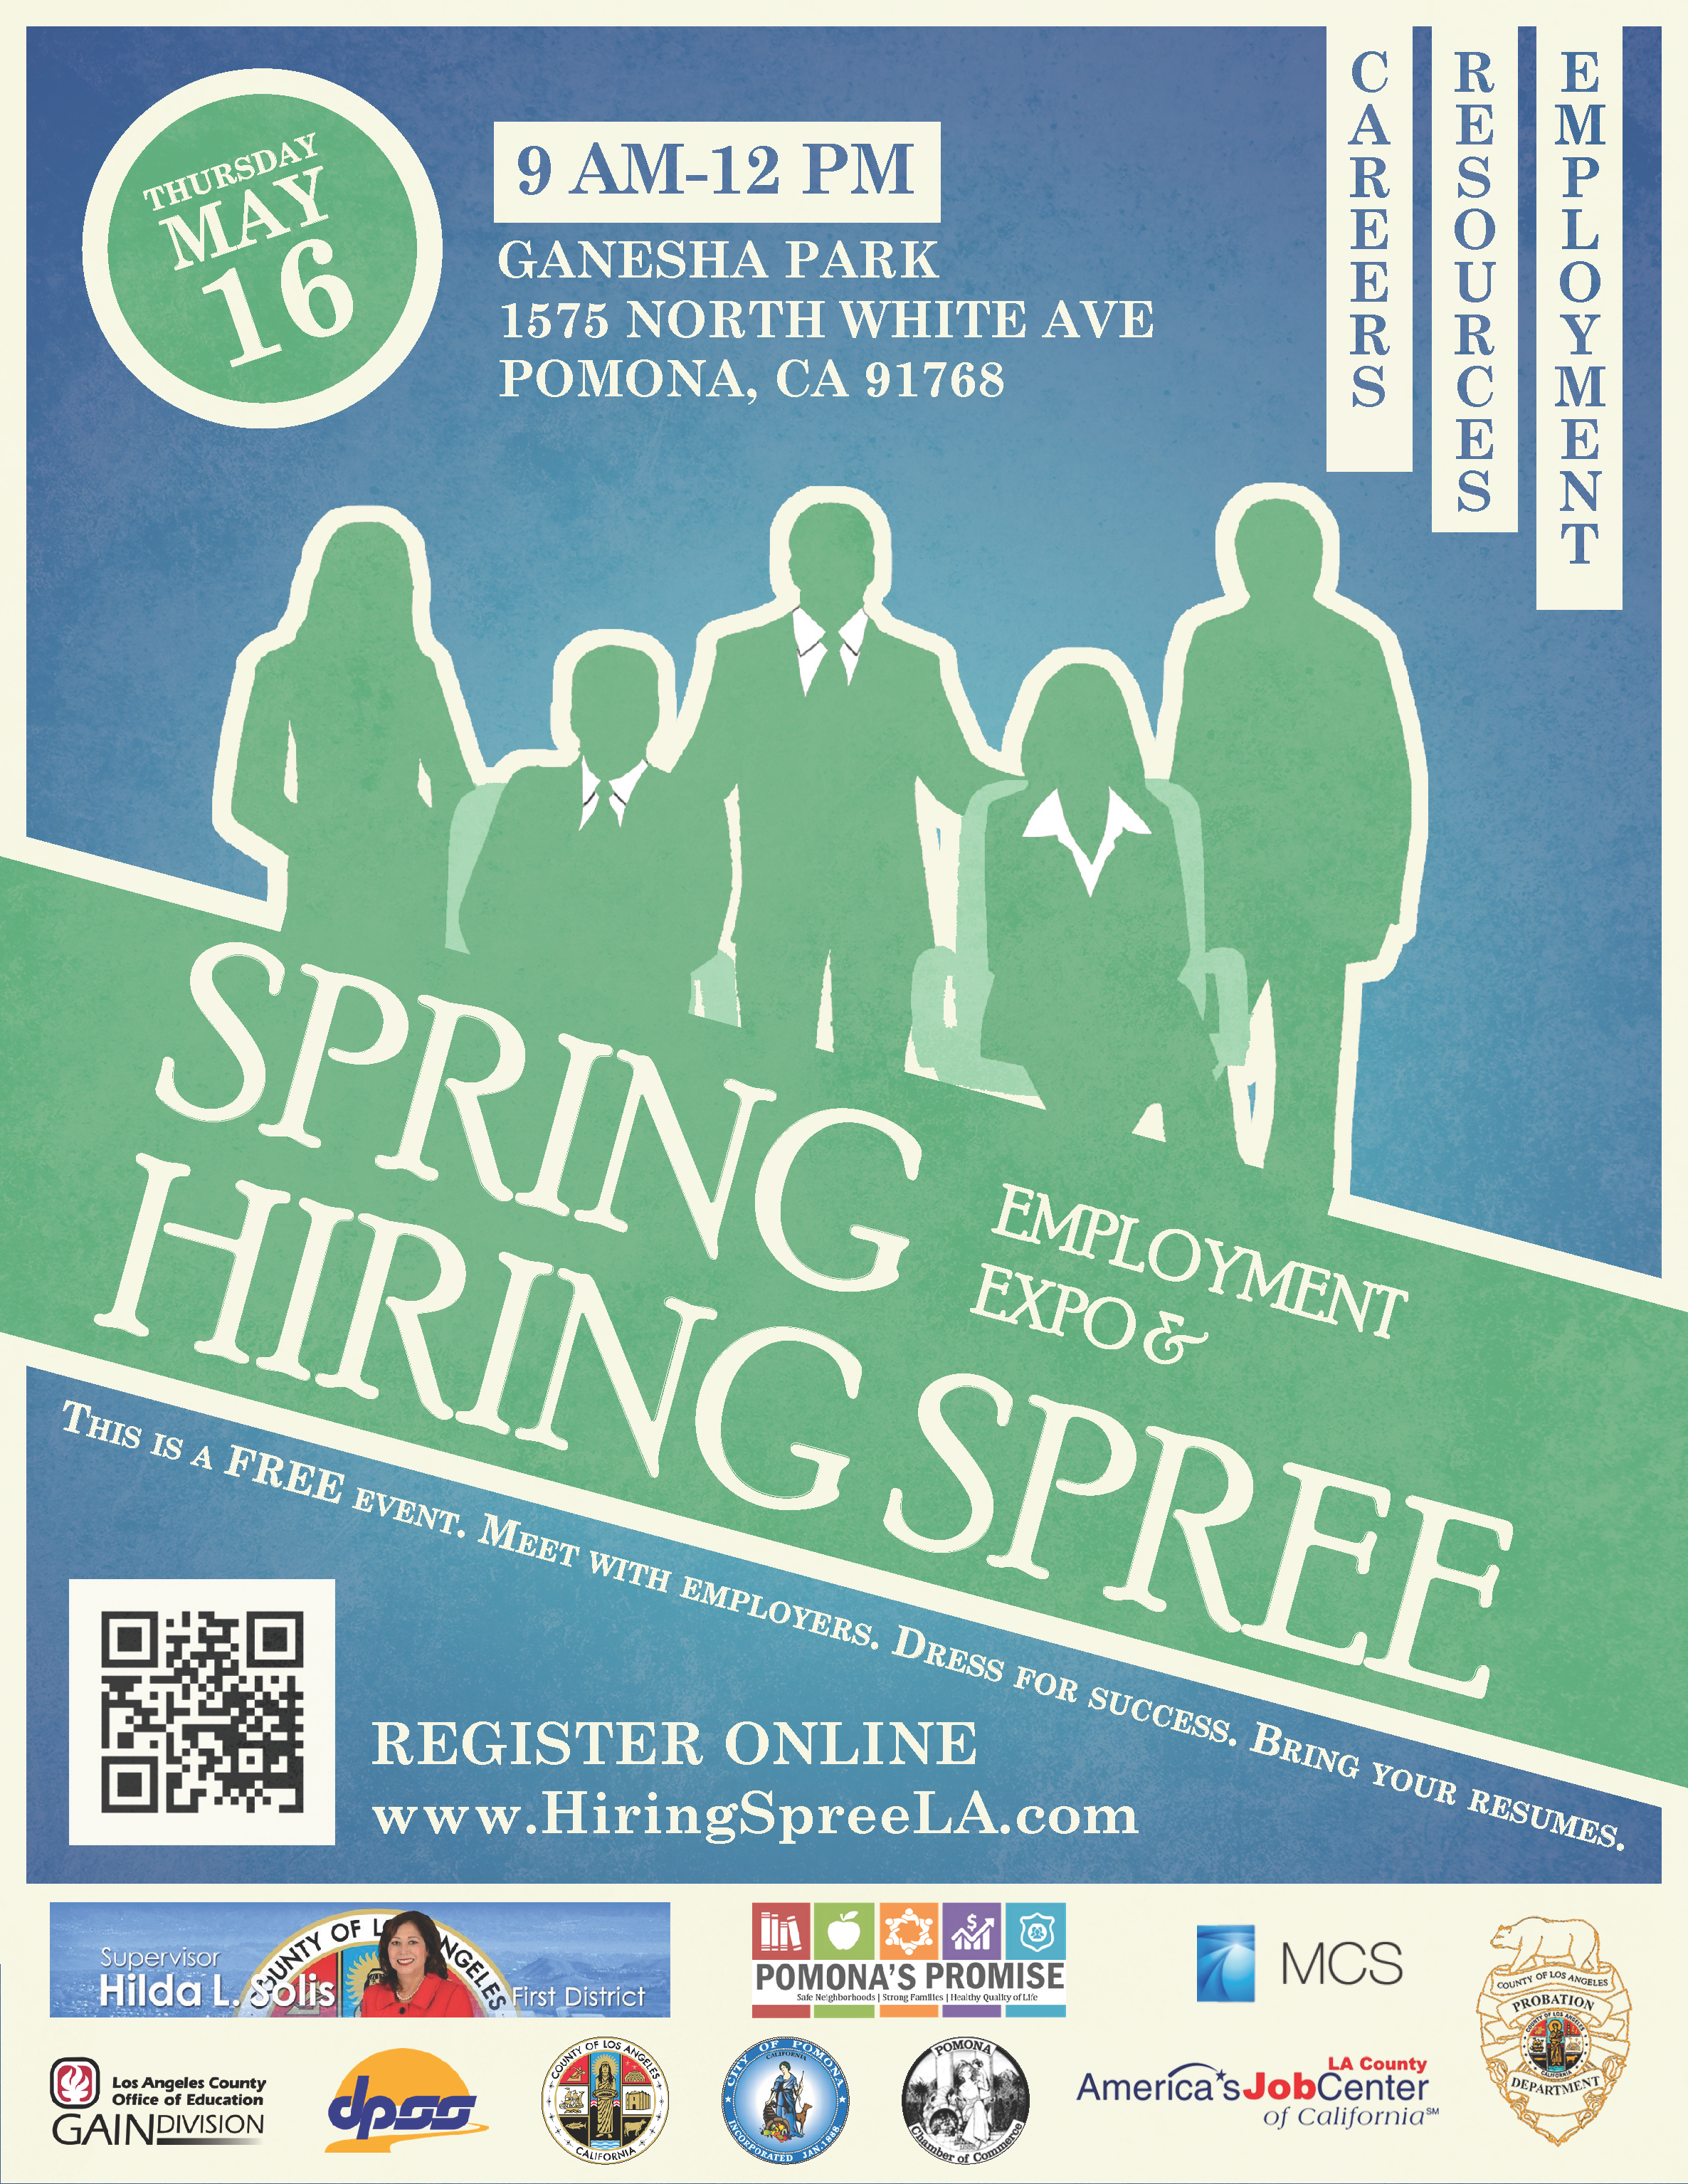 2019 pomona hiring spree flyer